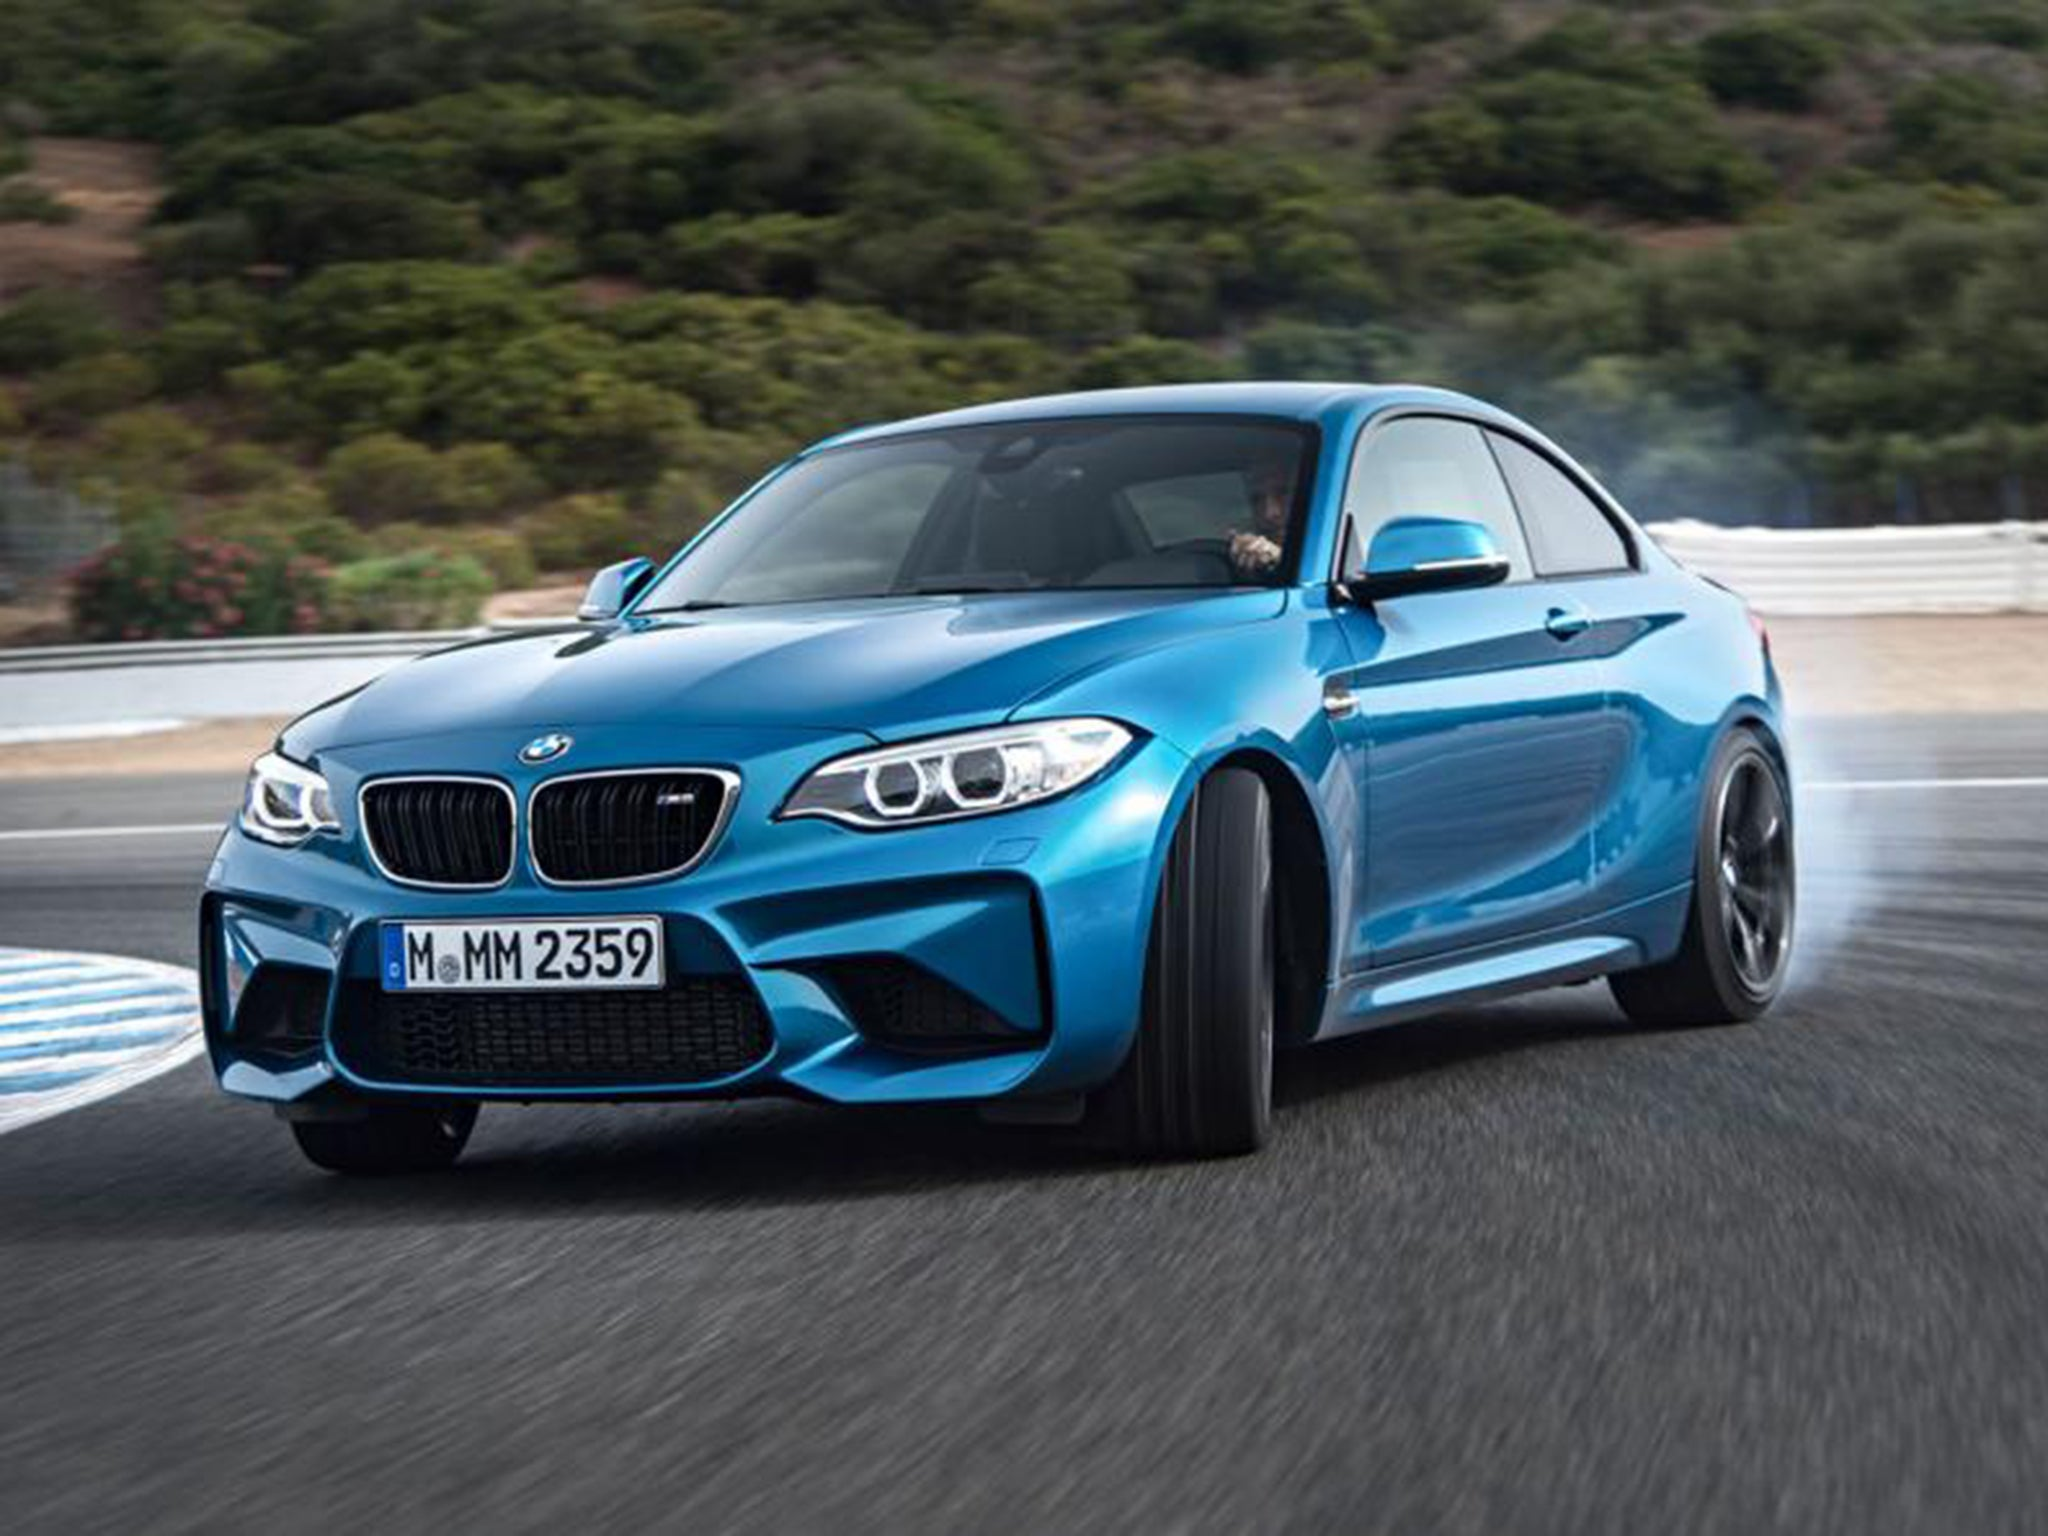 bmw m2 coupe latest news breaking stories and comment the rh independent co uk bmw m2 news latest bmw m2 competition news